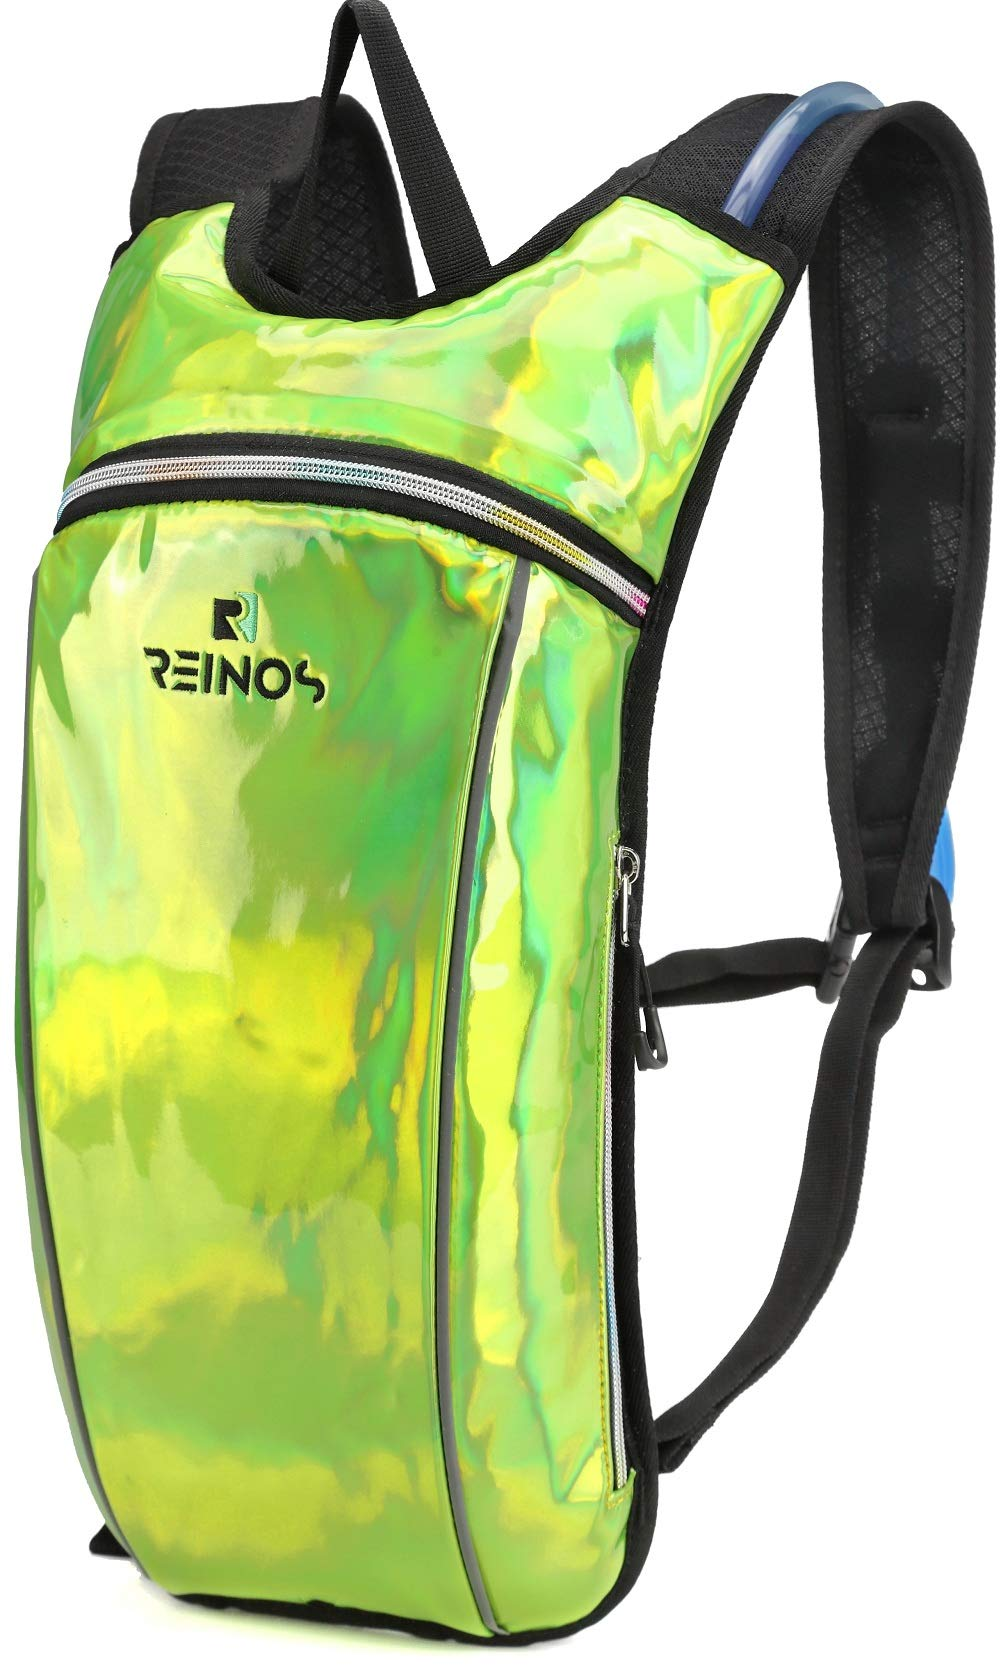 REINOS Hydration Backpack - Light Water Pack - 2L Water Bladder Included for Running, Hiking, Biking, Festivals, Raves (Green)